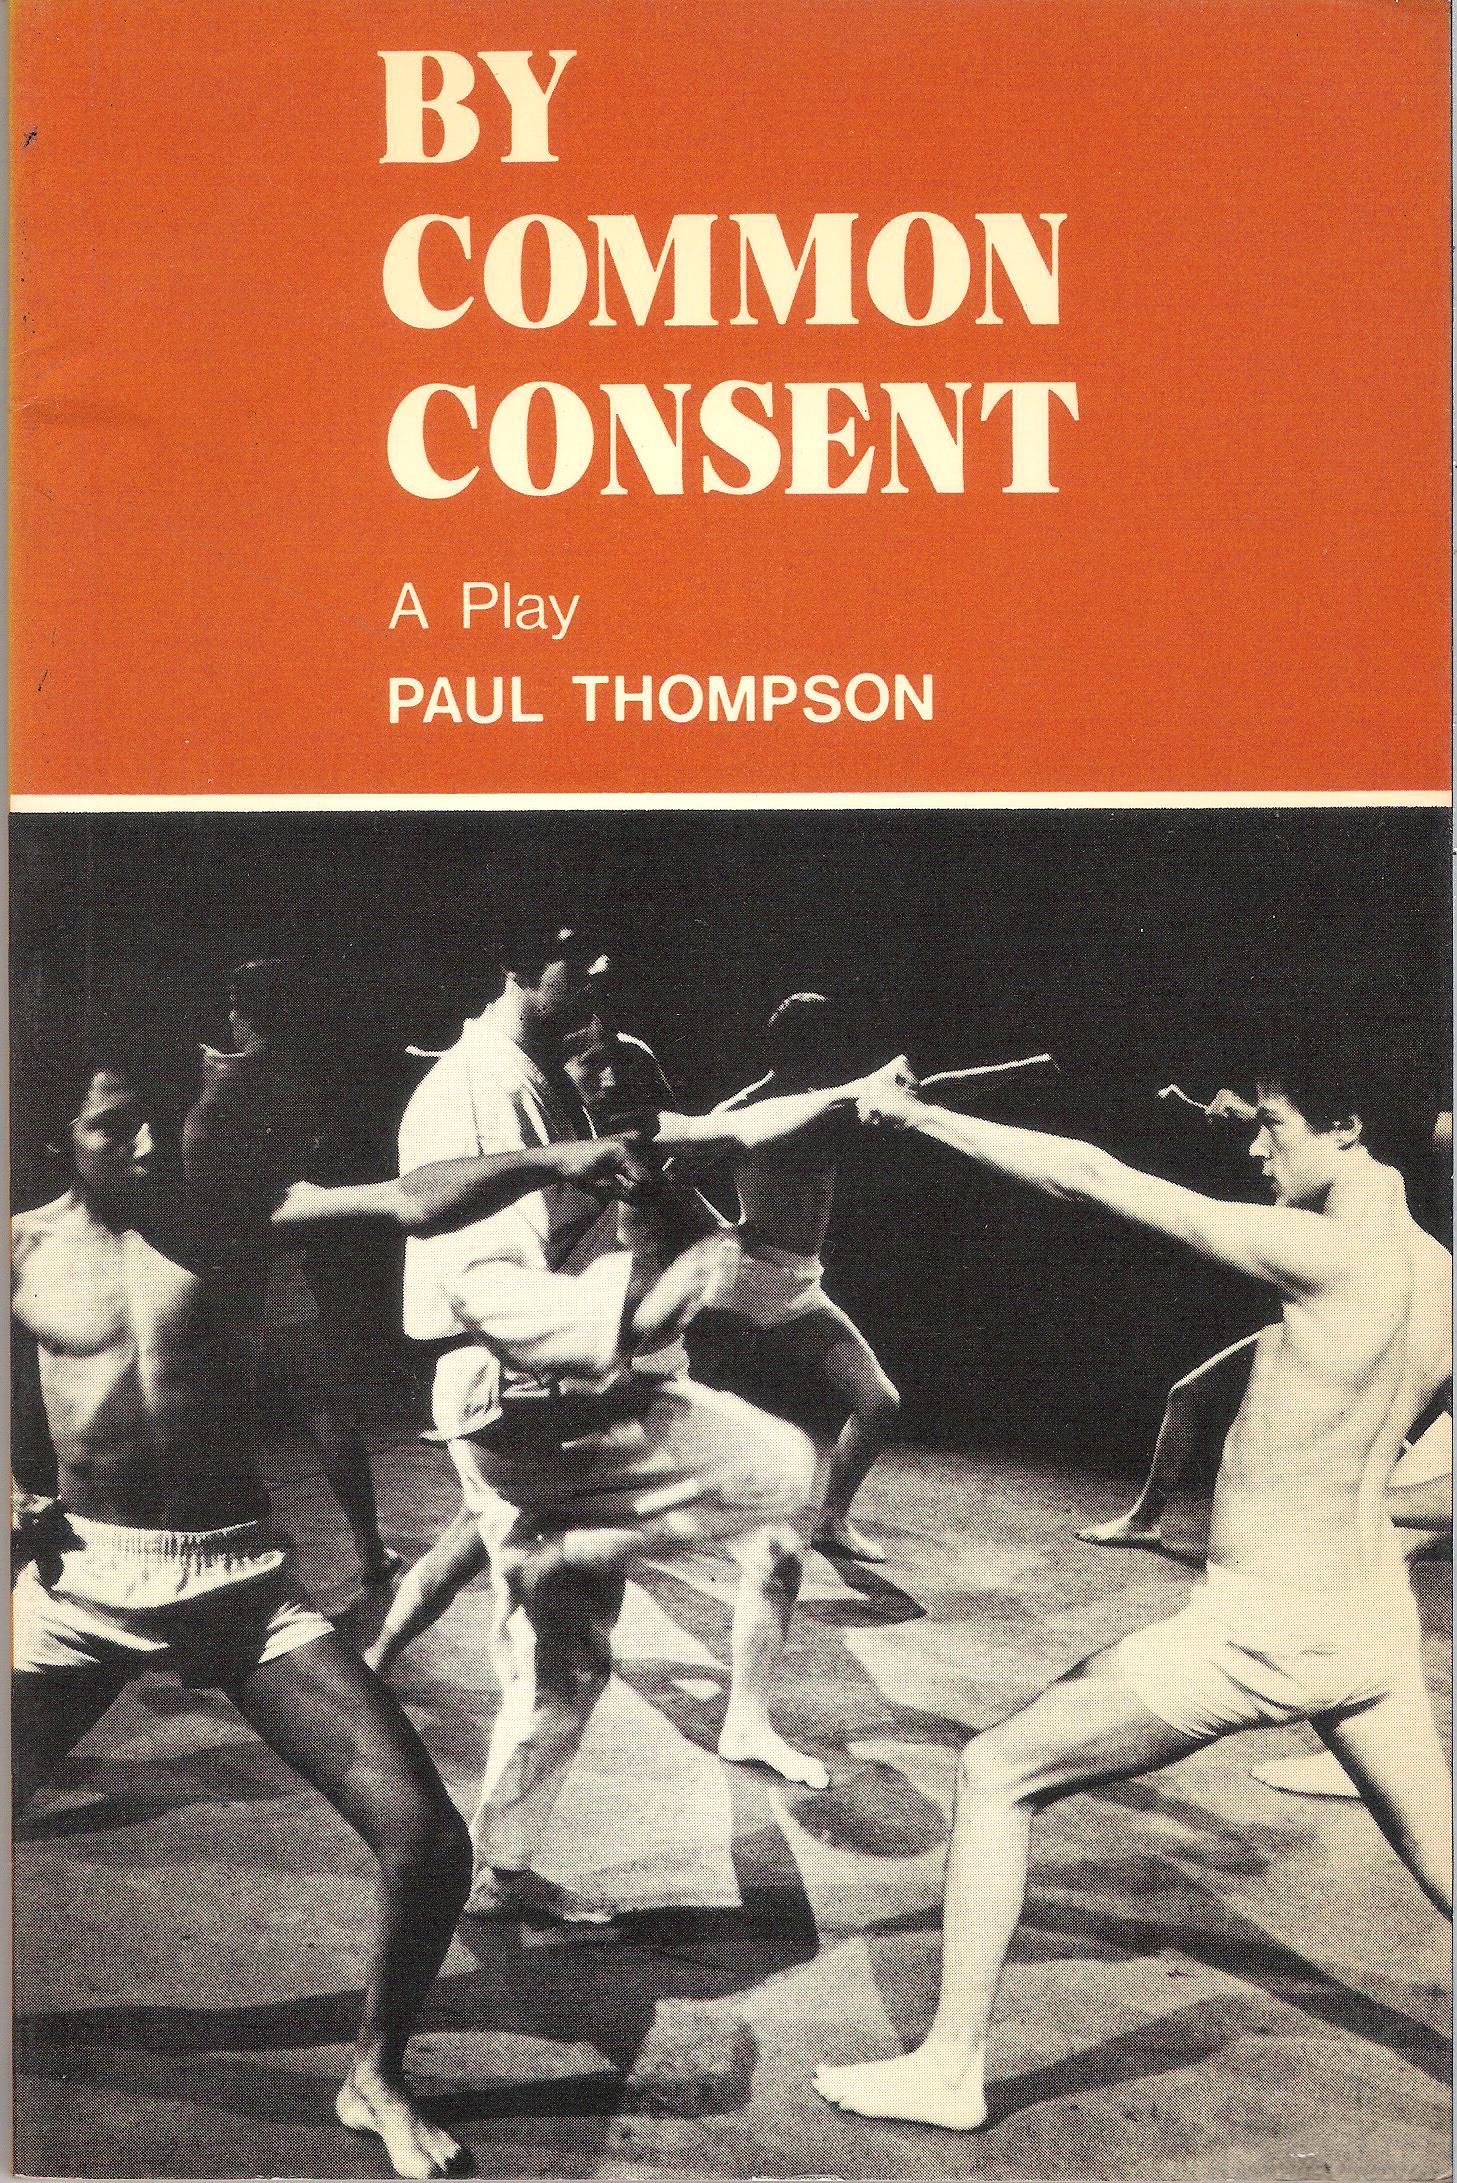 click on the imageabove to LISTEN TO A SONG FROM 'BY COMMON CONSENT'.